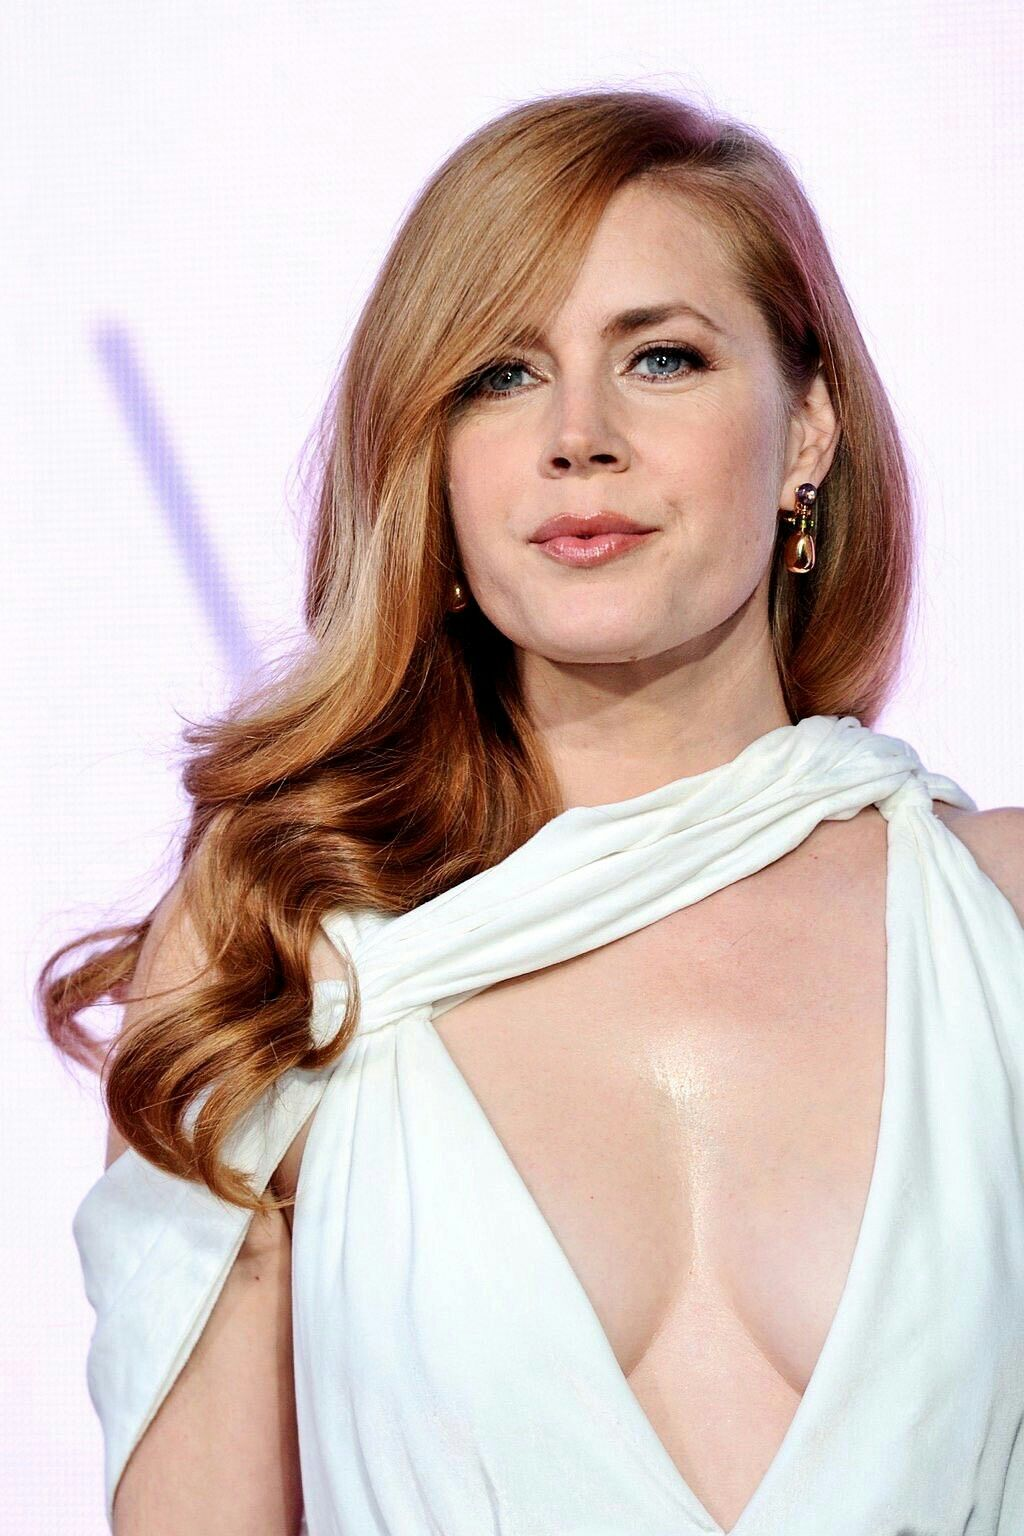 amy-adams-younger-topless-nude-wedding-tits